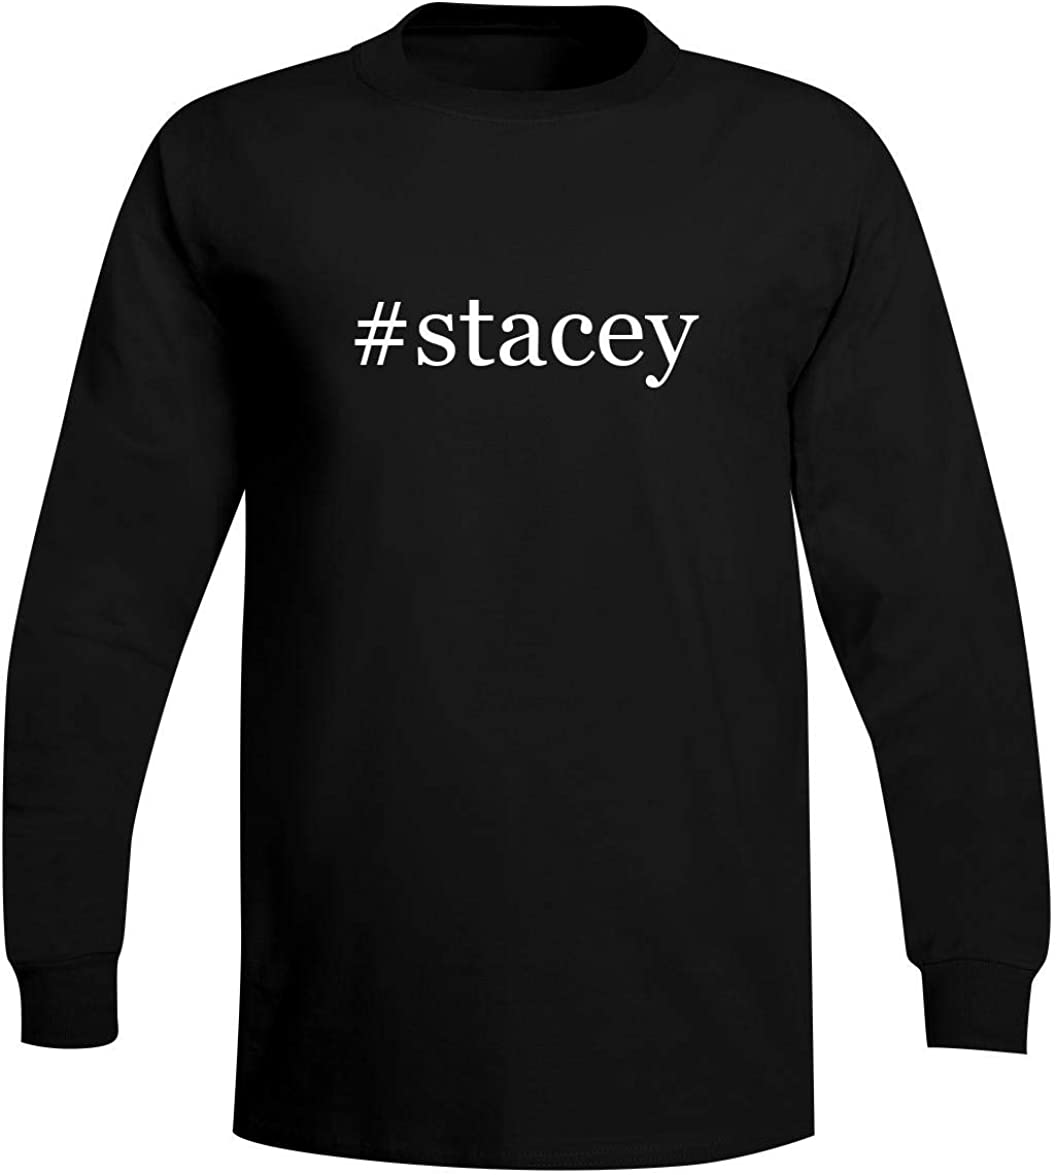 The Town Butler #Stacey - A Soft & Comfortable Hashtag Men's Long Sleeve T-Shirt